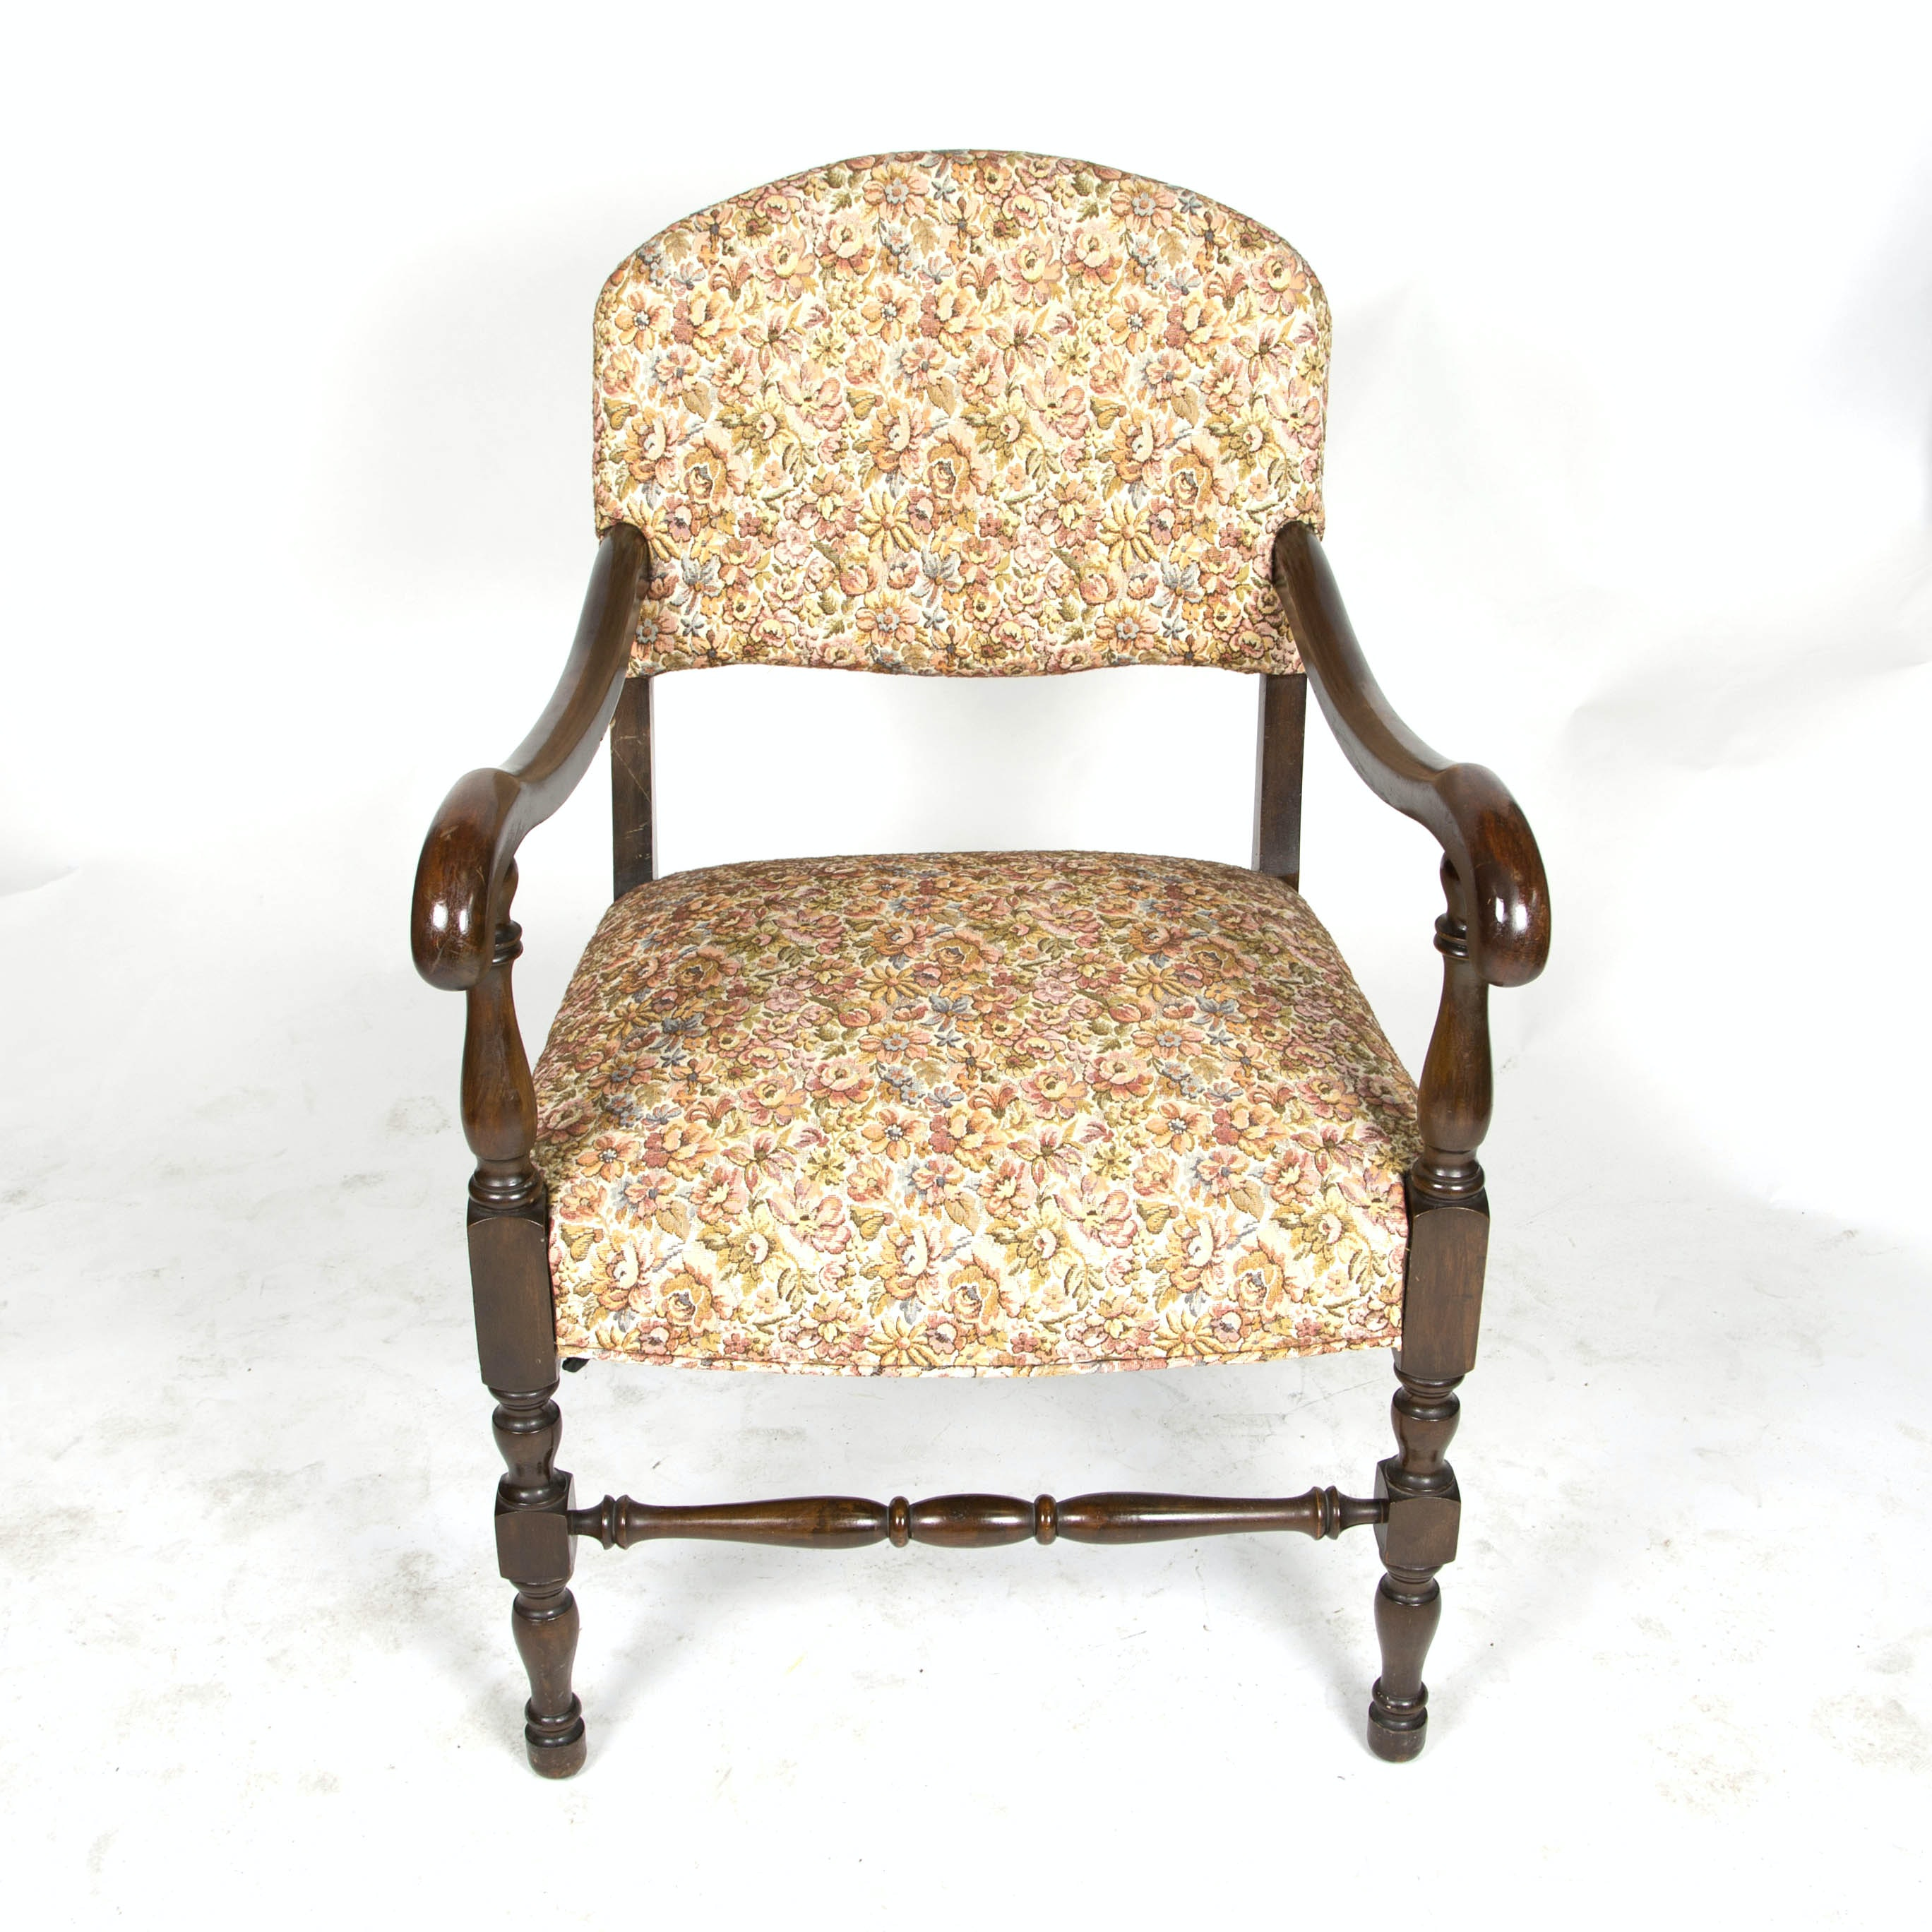 Vintage Jacobean Style Upholstered Arm Chair